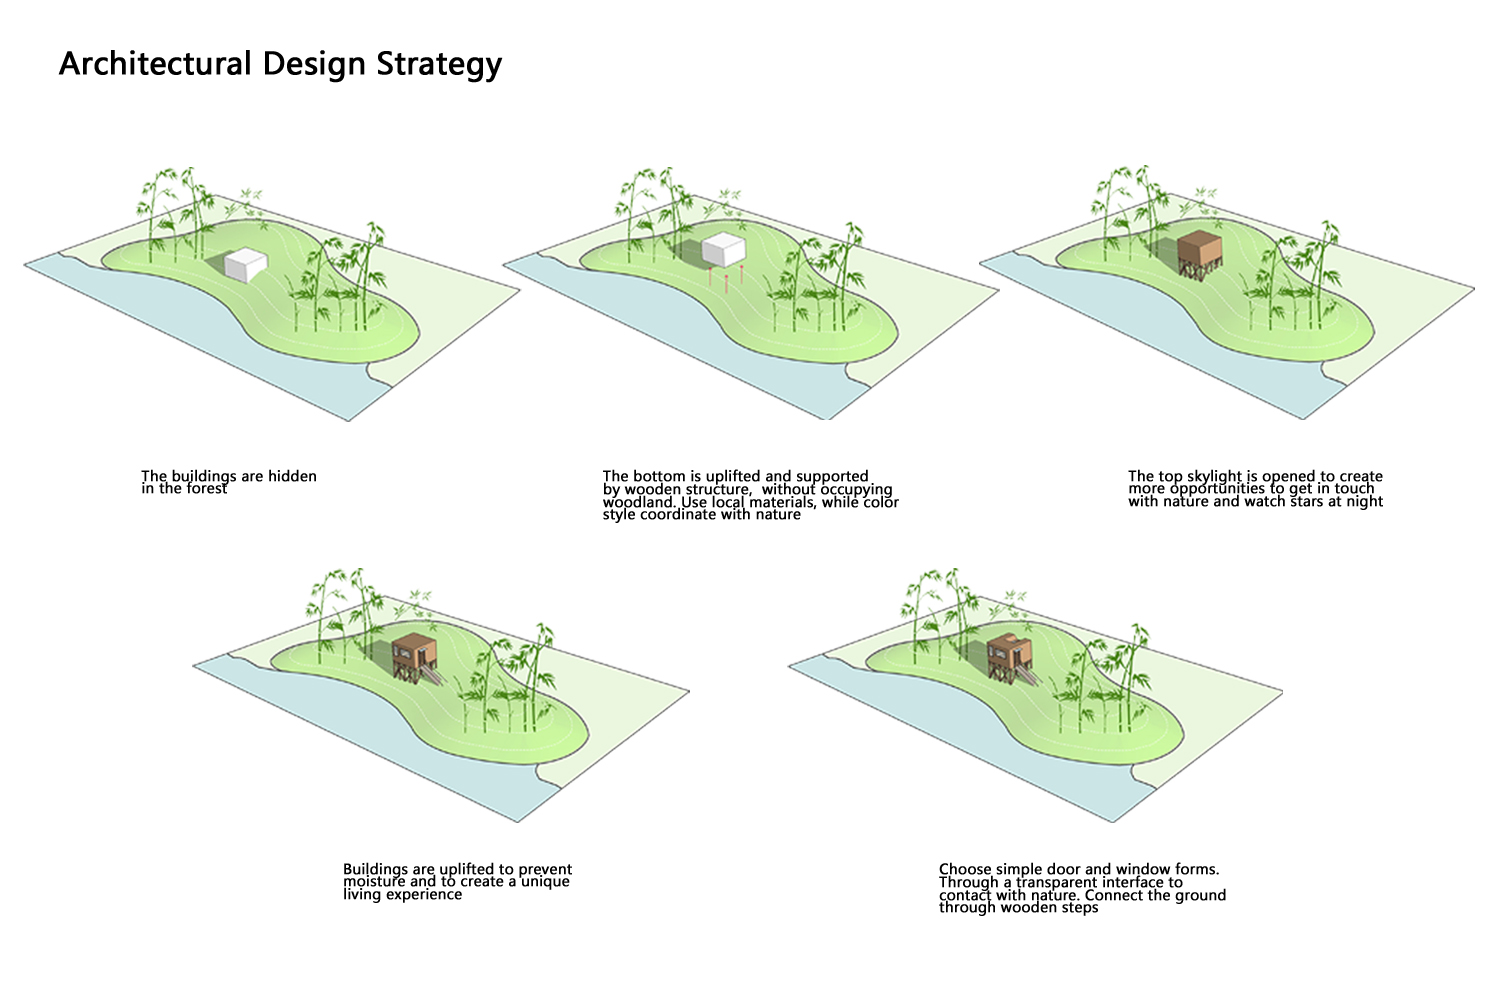 Architectural Design Strategy Drawn by Shanghai Tianhua Architectural Design Co., Ltd.}